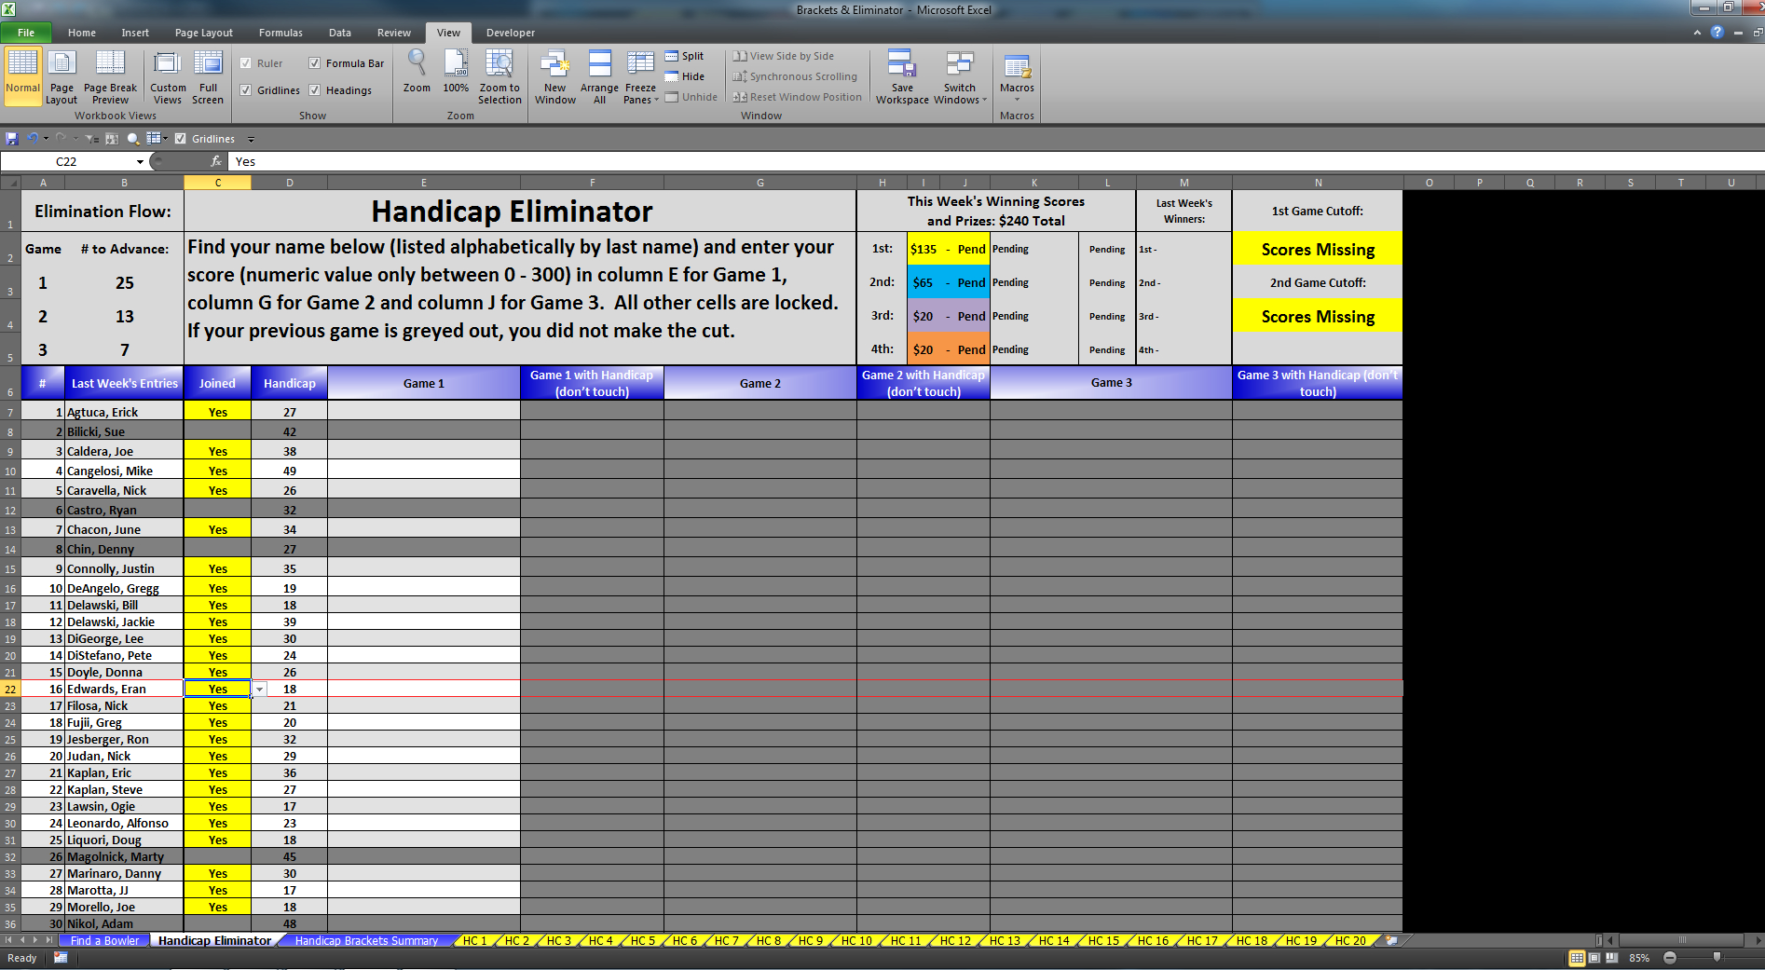 bowling prize fund spreadsheet bowling tournament prize fund spreadsheet  Bowling Prize Fund Spreadsheet With Eliminator  Bracket Excel Software For Sale!  For Sale/wanted Bowling Prize Fund Spreadsheet Printable Spreadshee